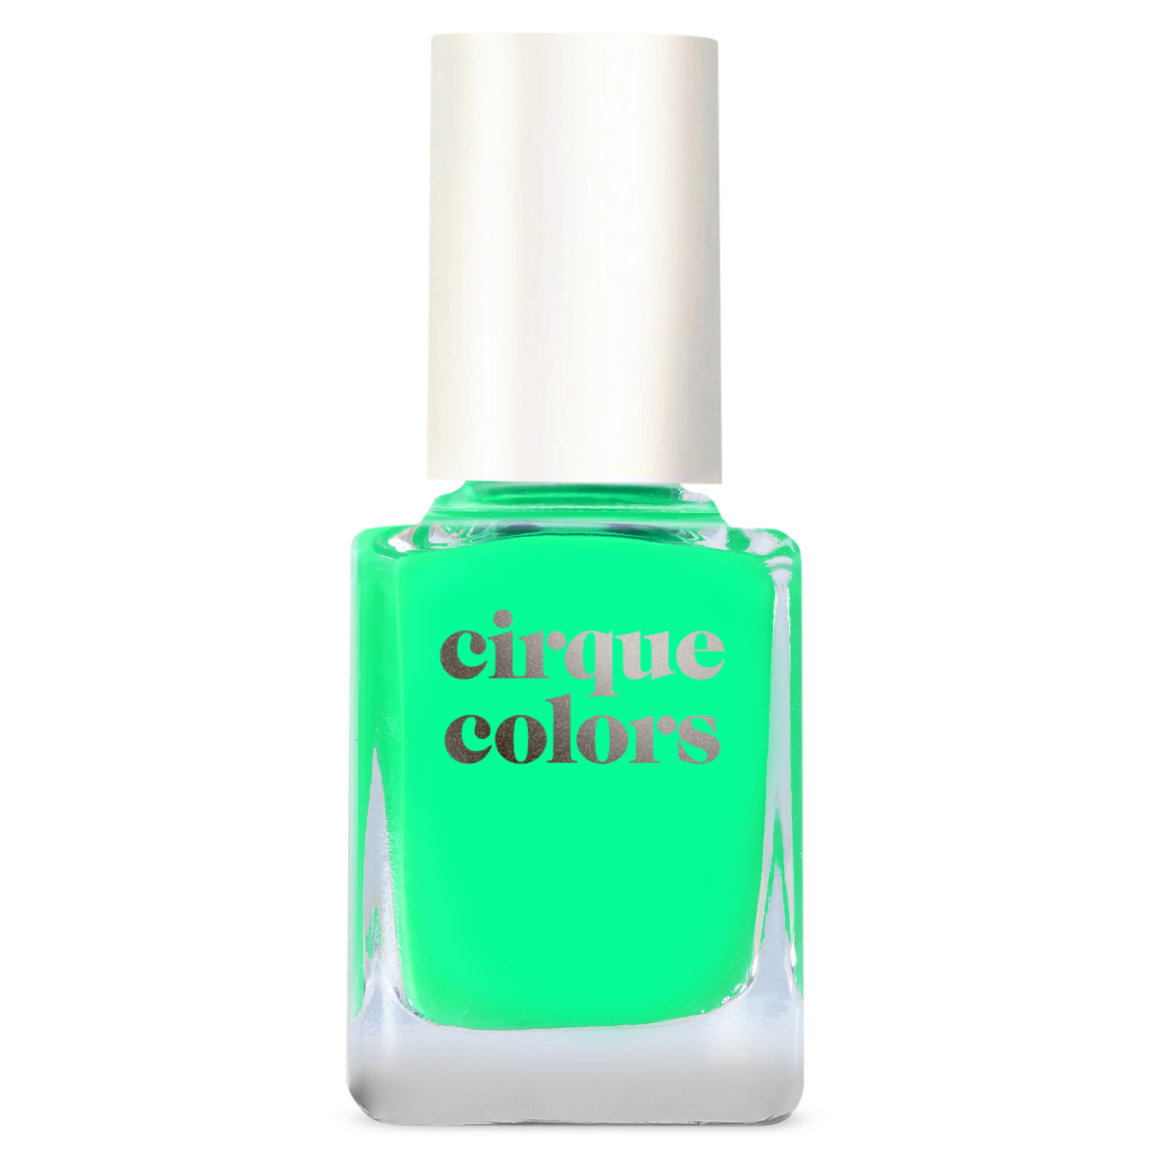 Cirque Colors Creme Nail Polish Thirsty alternative view 1 - product swatch.